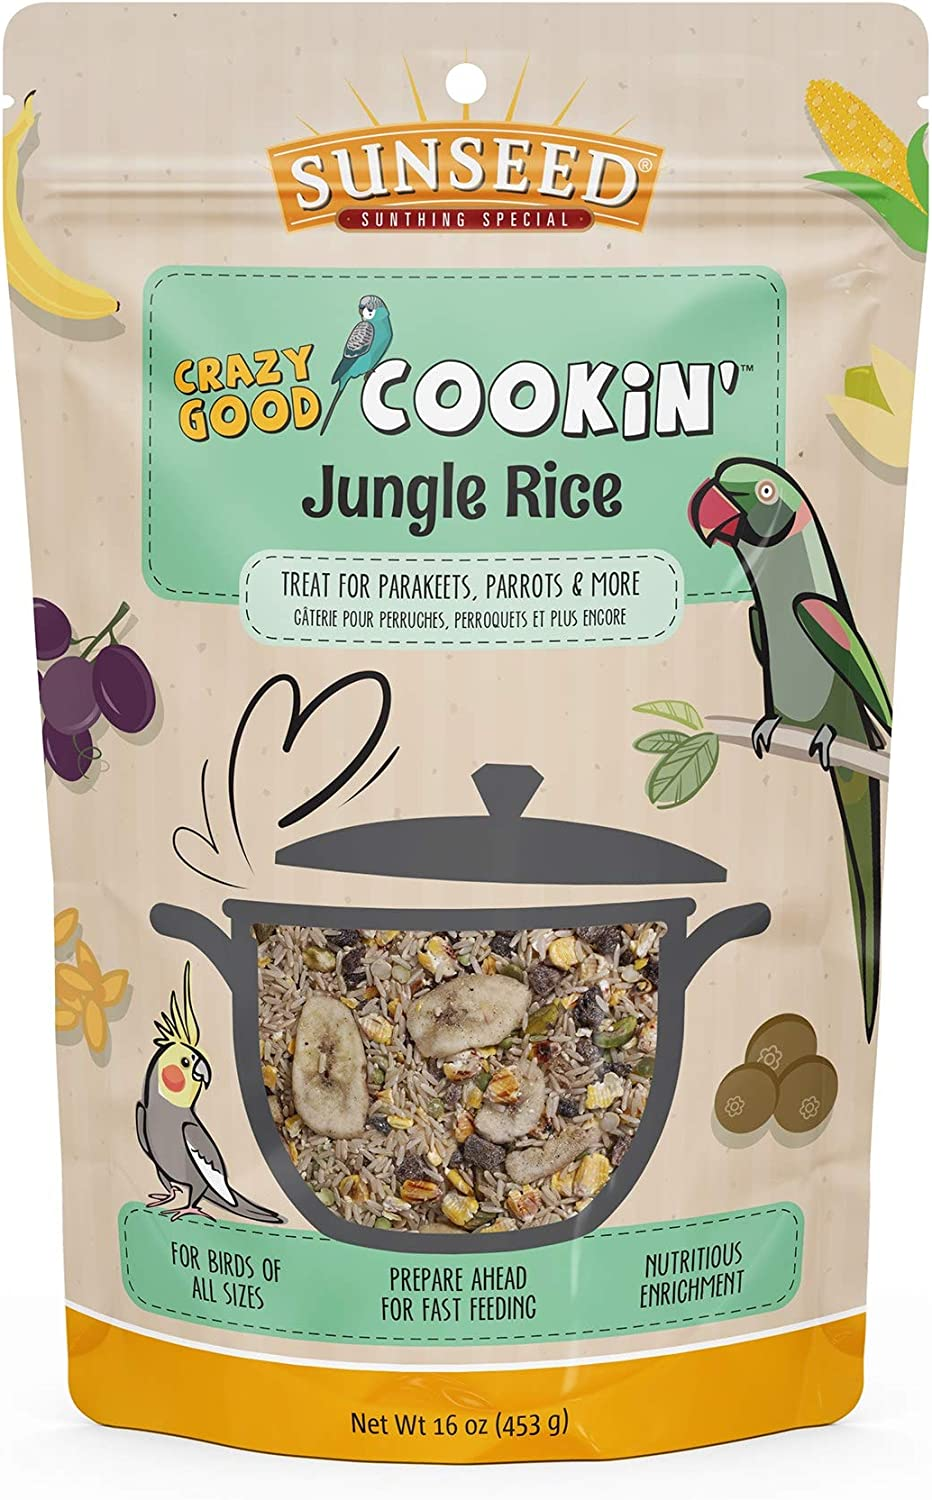 Sunseed Crazy Good Cookin Bird Treat, 16 Ounces, Jungle Rice with Bananas Dates and Pistachios, Brown